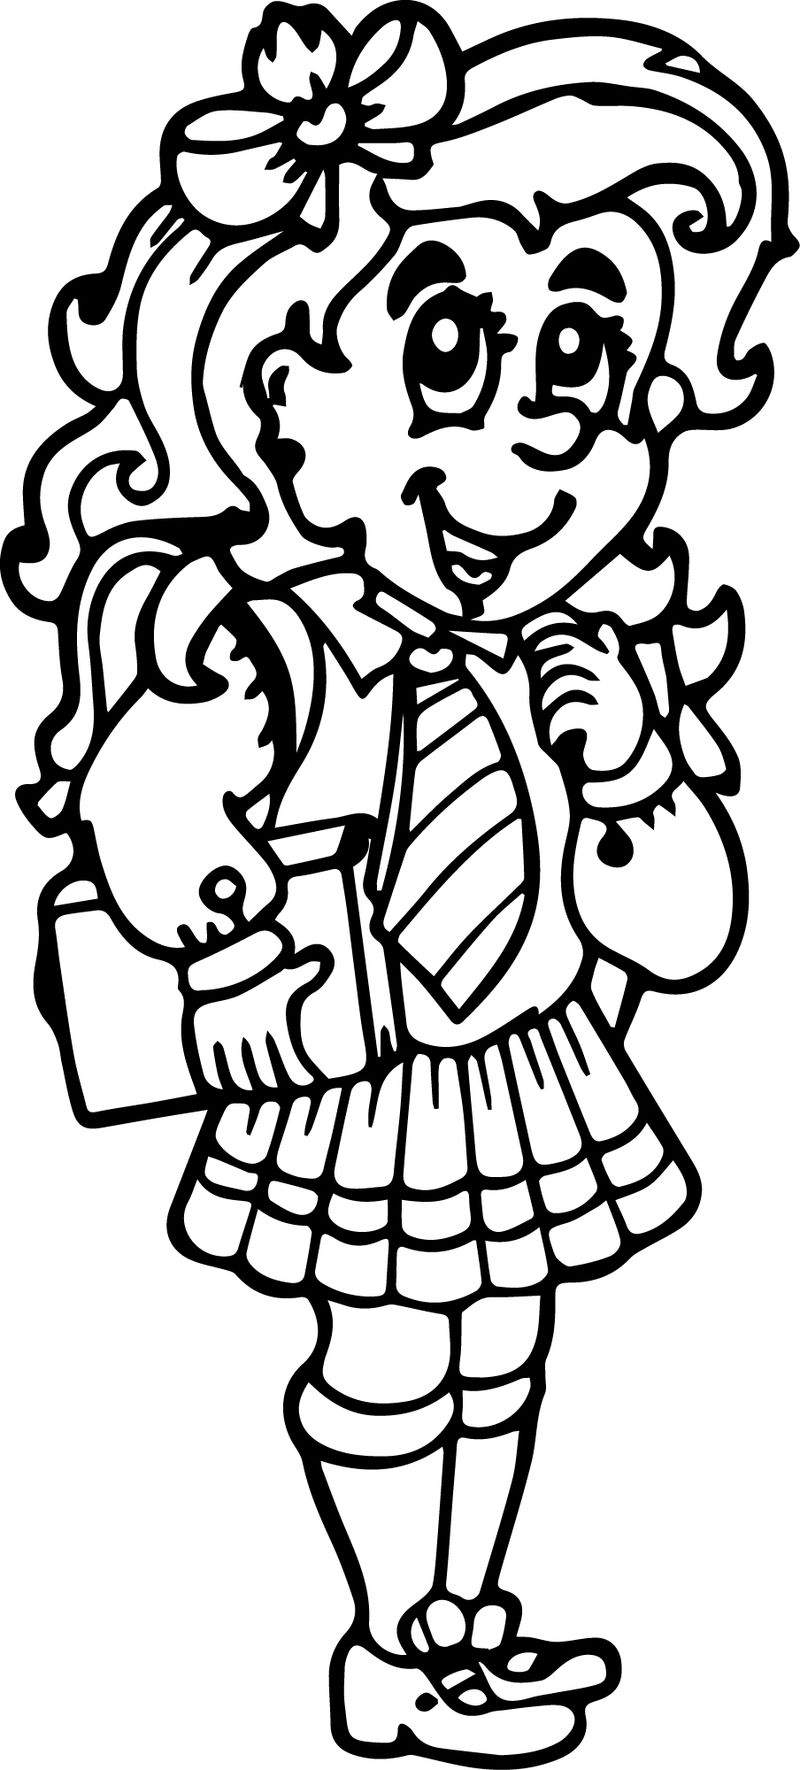 school girl coloring pages school girl coloring page coloring sheets school girl coloring pages